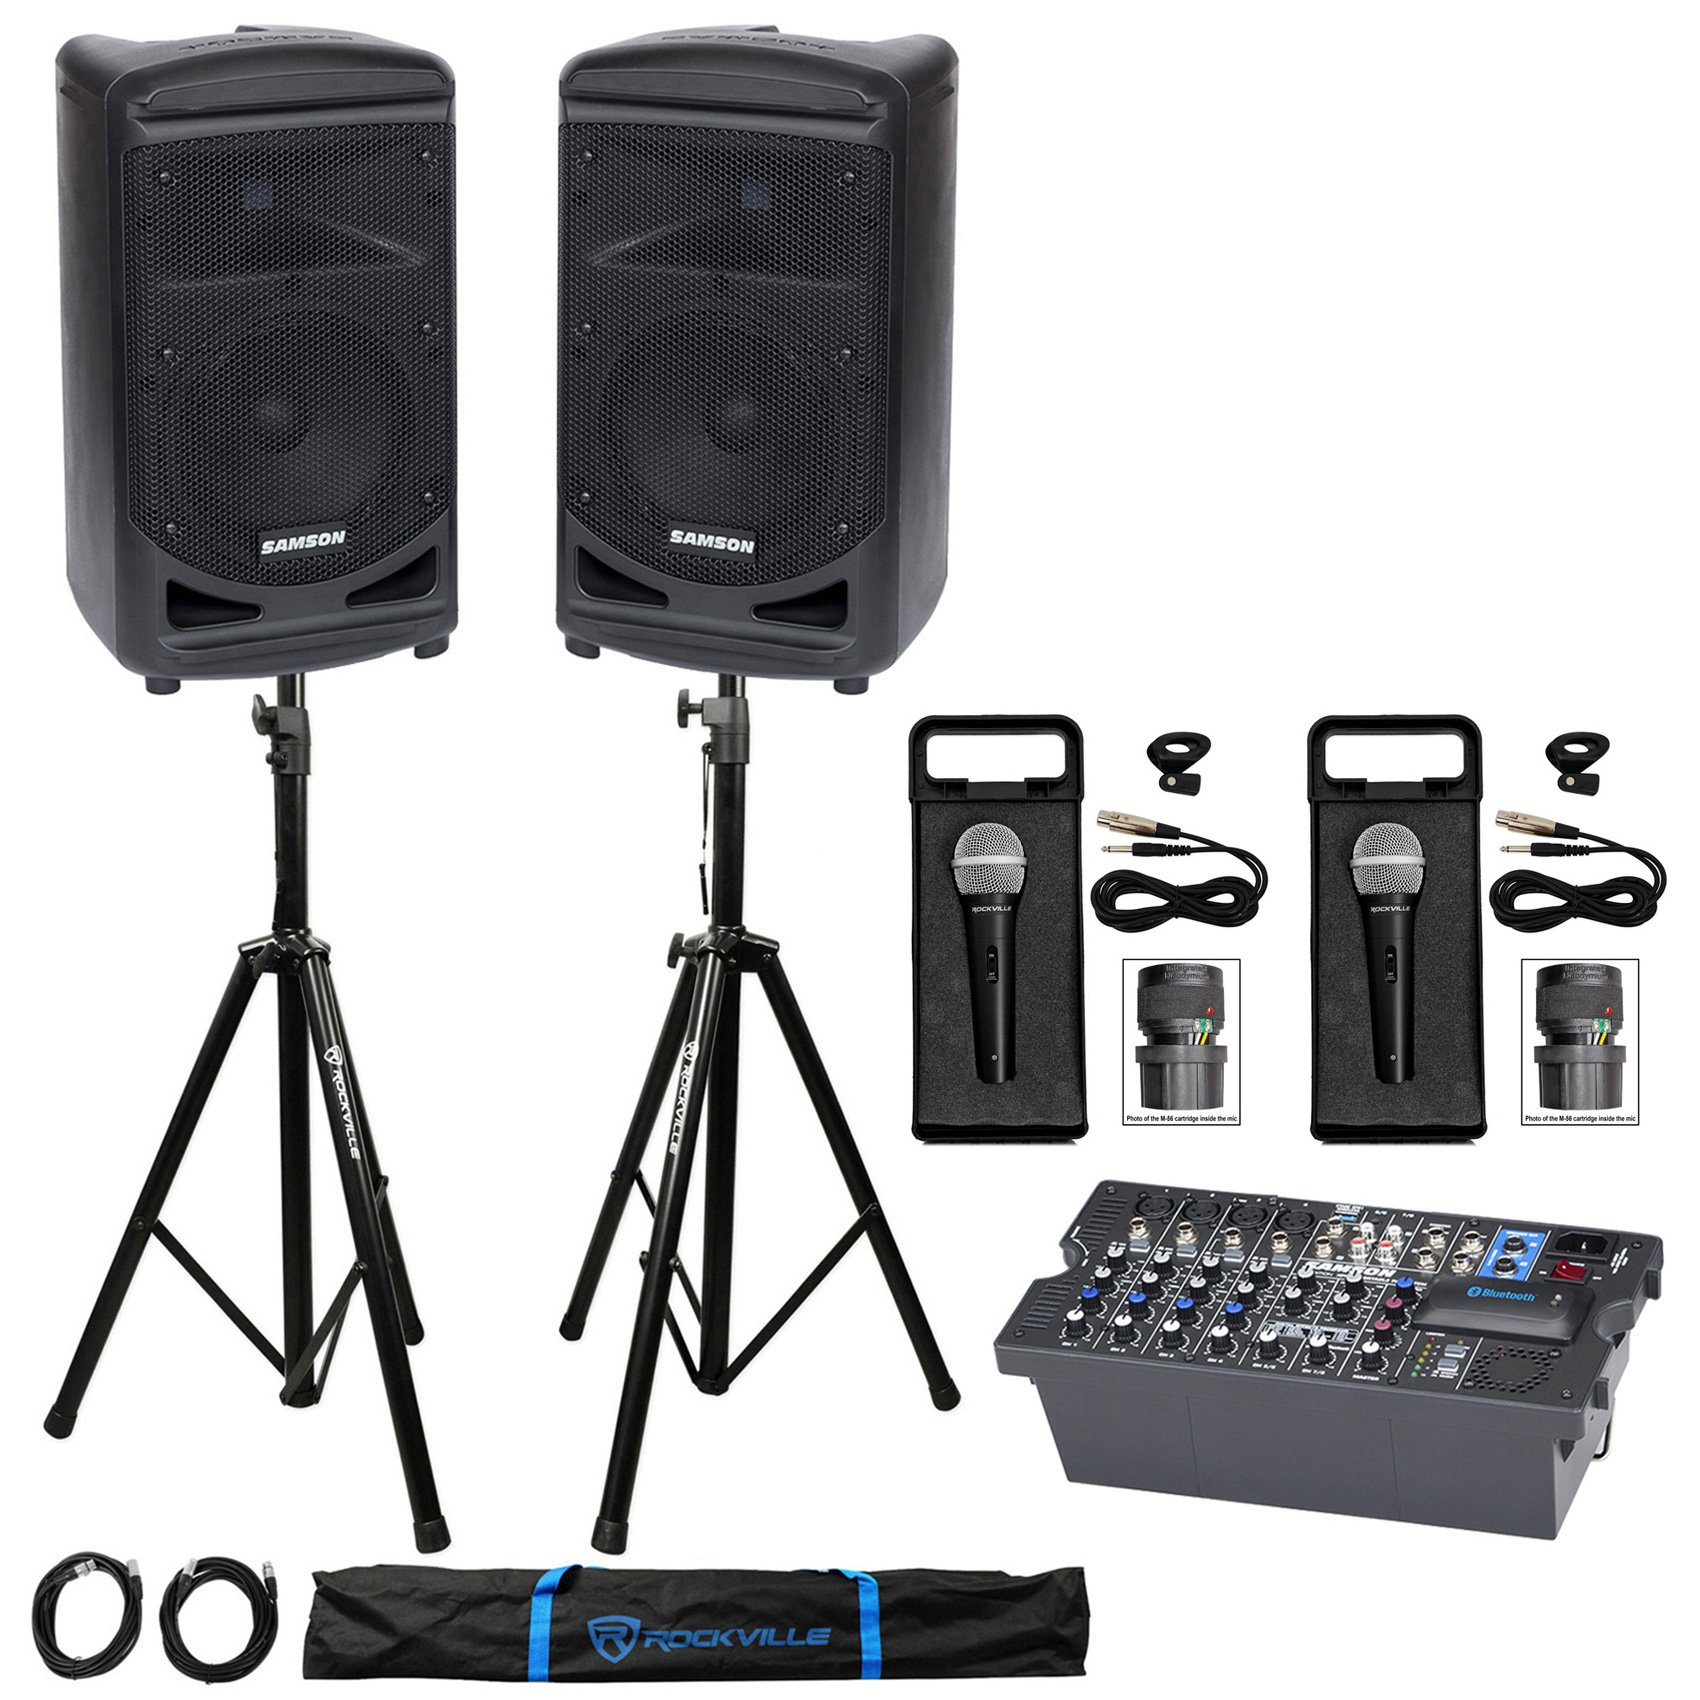 Samson Expedition XP800 800w Portable 8'' PA DJ Speakers+Mixer+Stands+Cables+Mics